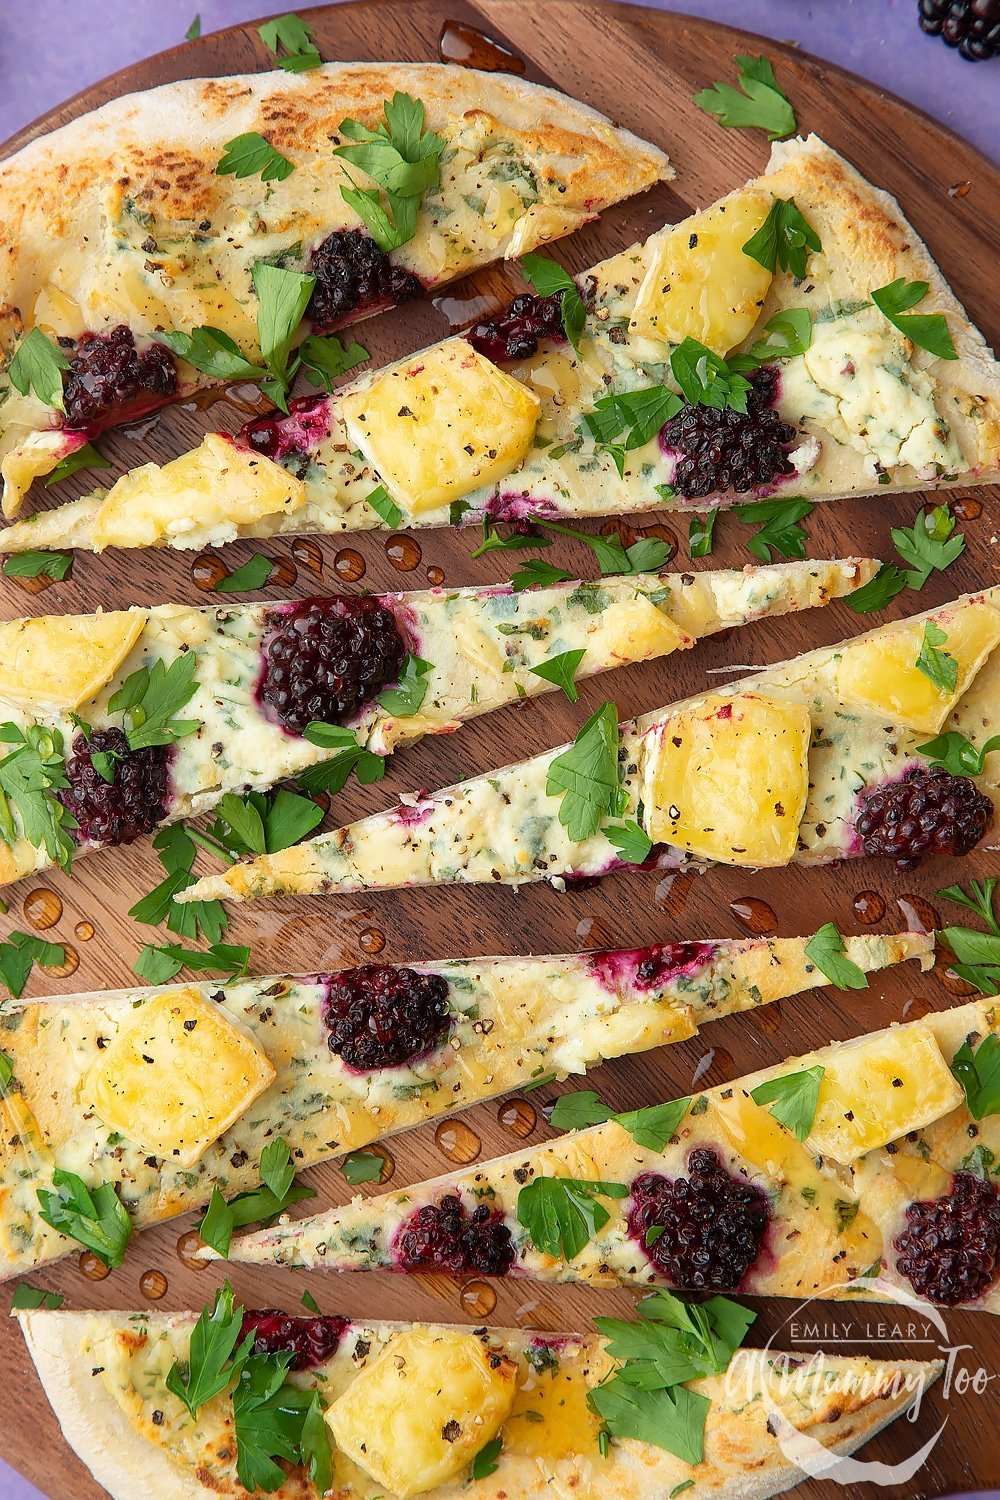 Brie and blackberry pizza sliced on a dark wooden board. The pizza has been drizzled with honey.